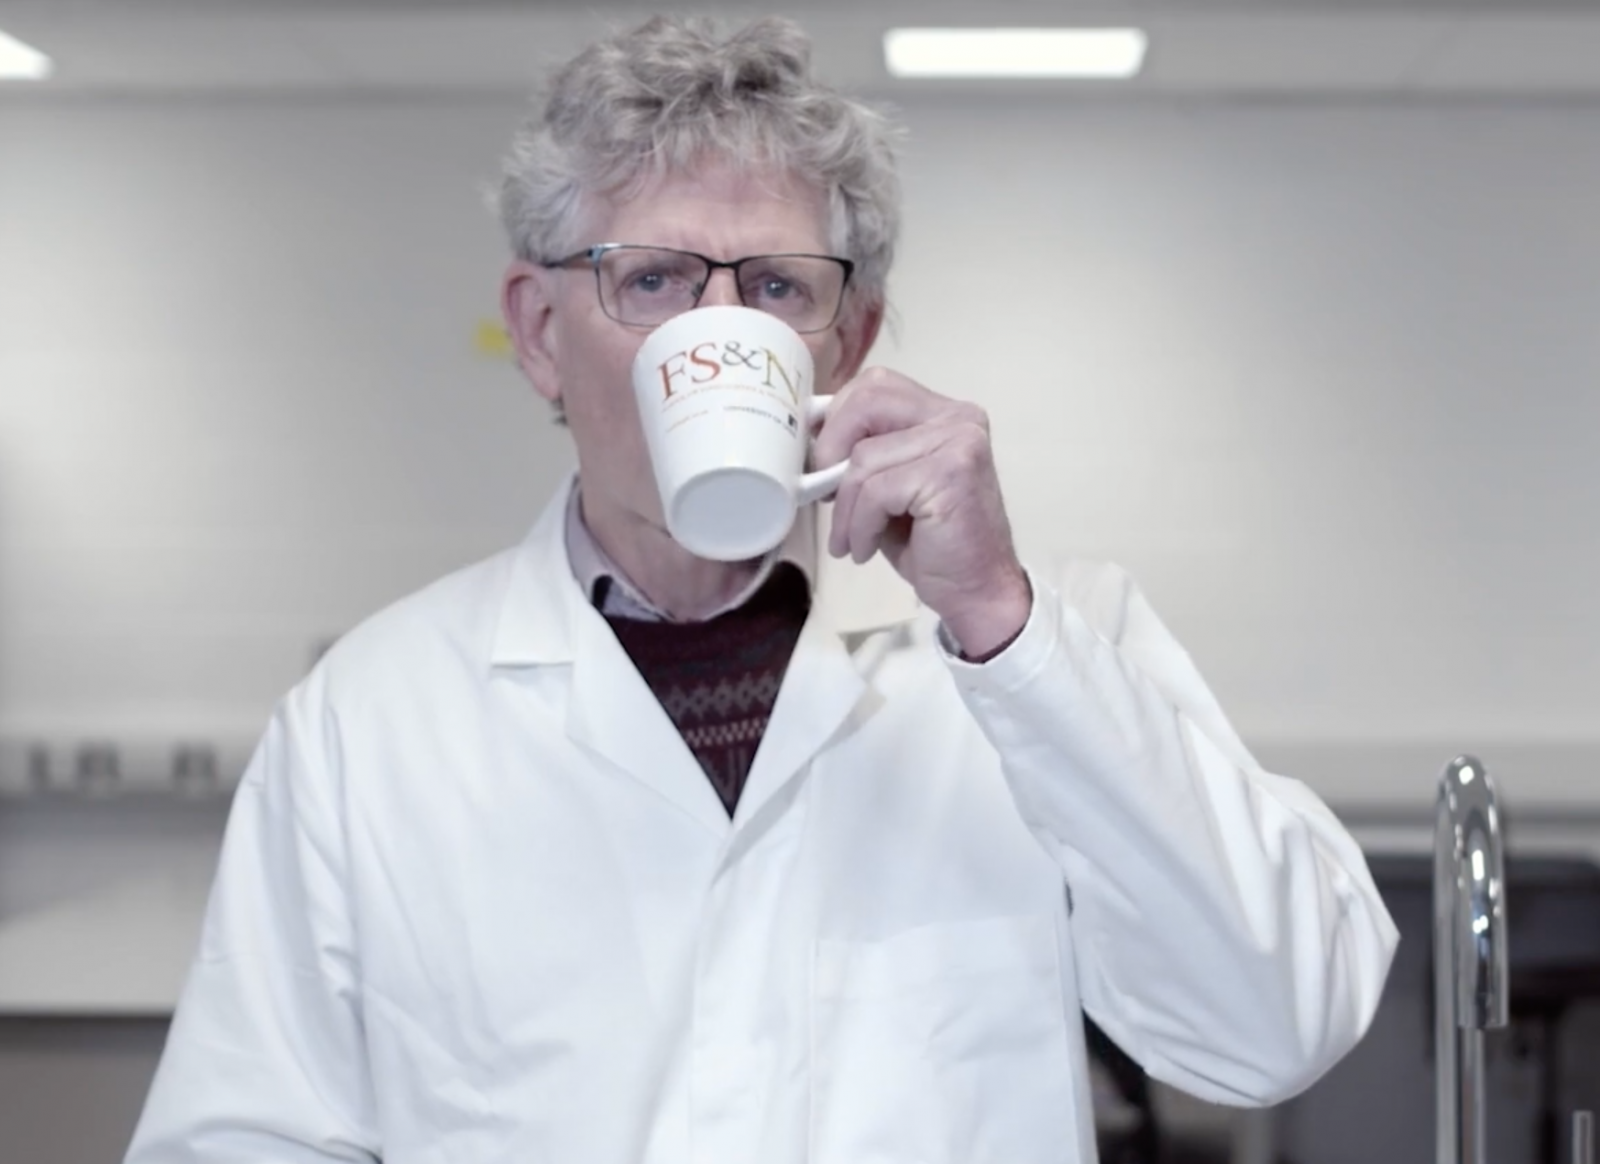 A professor has claimed that putting milk before water makes tea taste better, The Manc